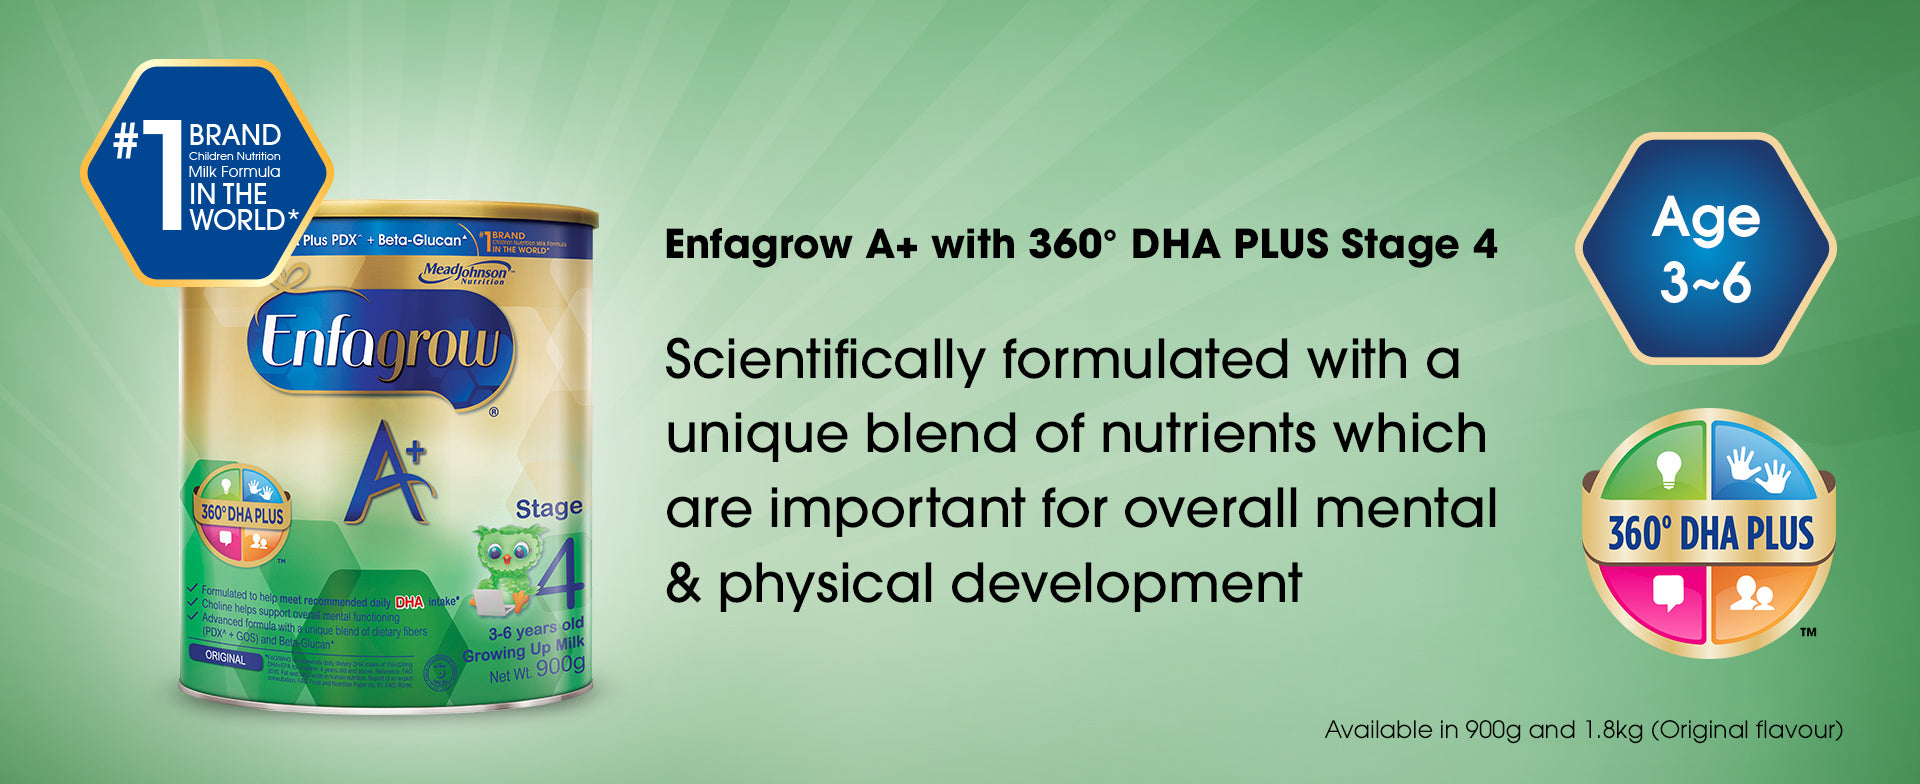 Enfagrow A+ with 360 degrees DHA PLUS Stage 4 - a product banner image with basic information